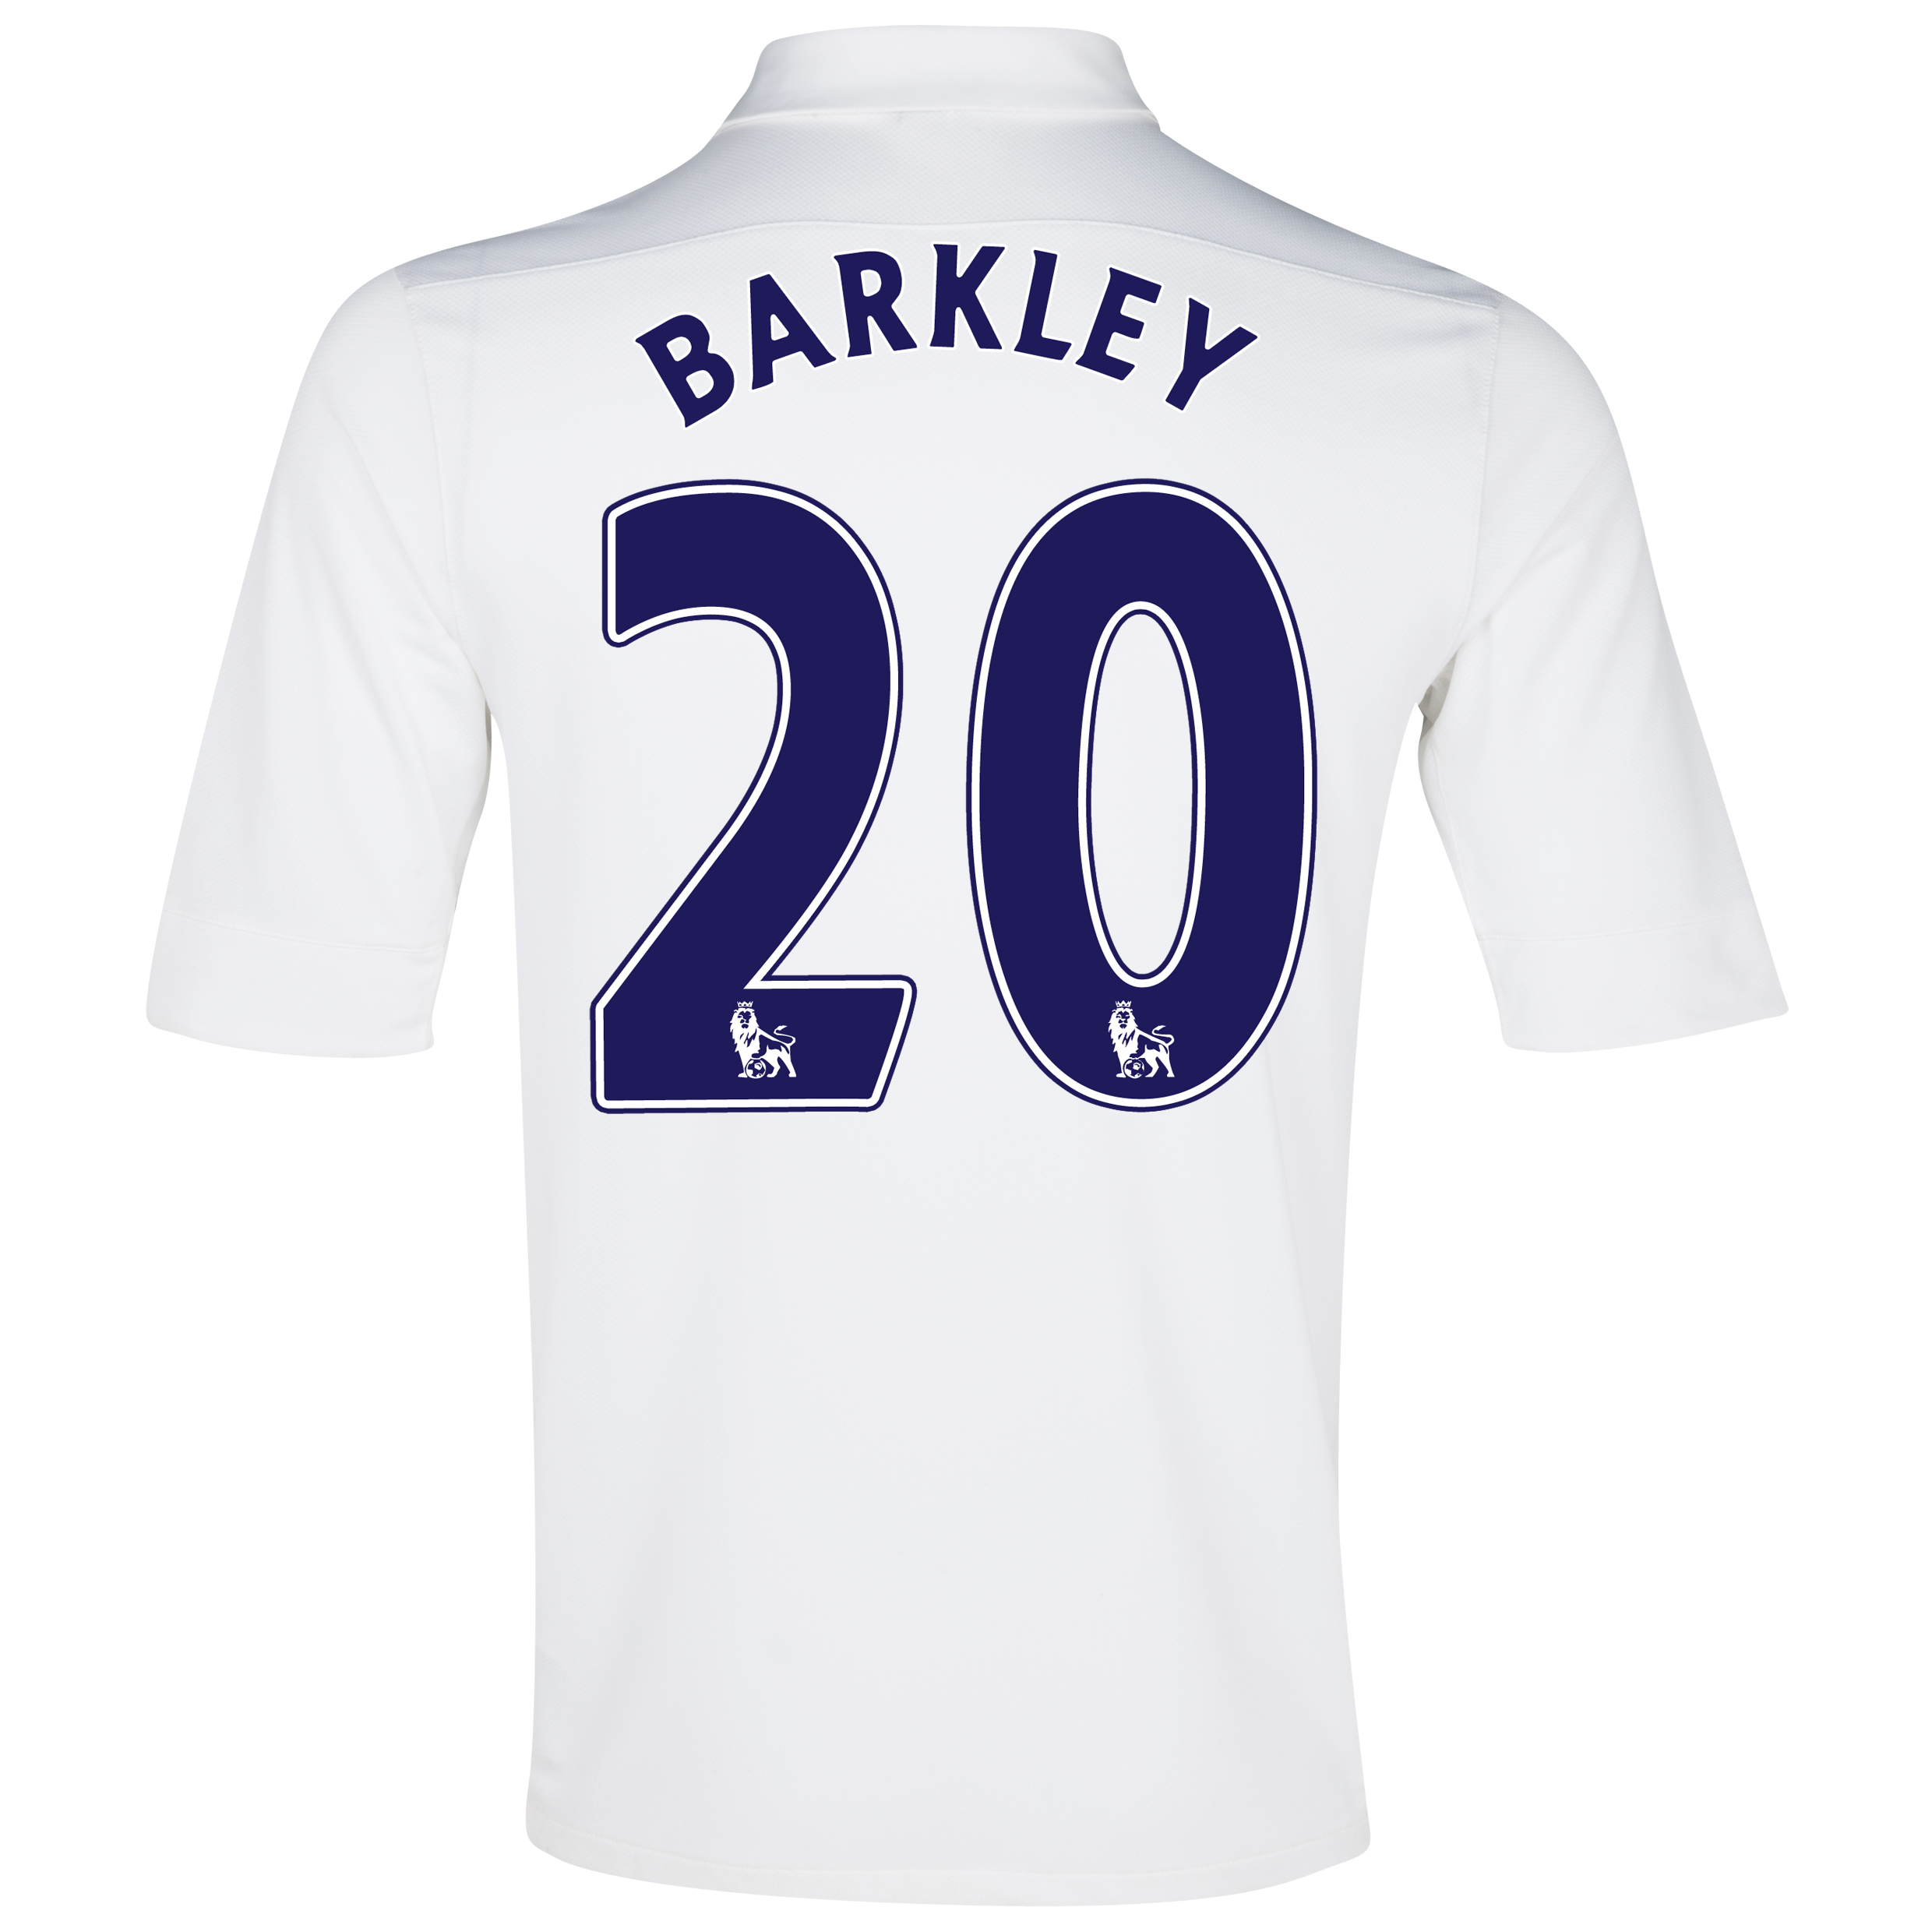 Everton 3rd Shirt 2012/13 with Barkley 20 printing